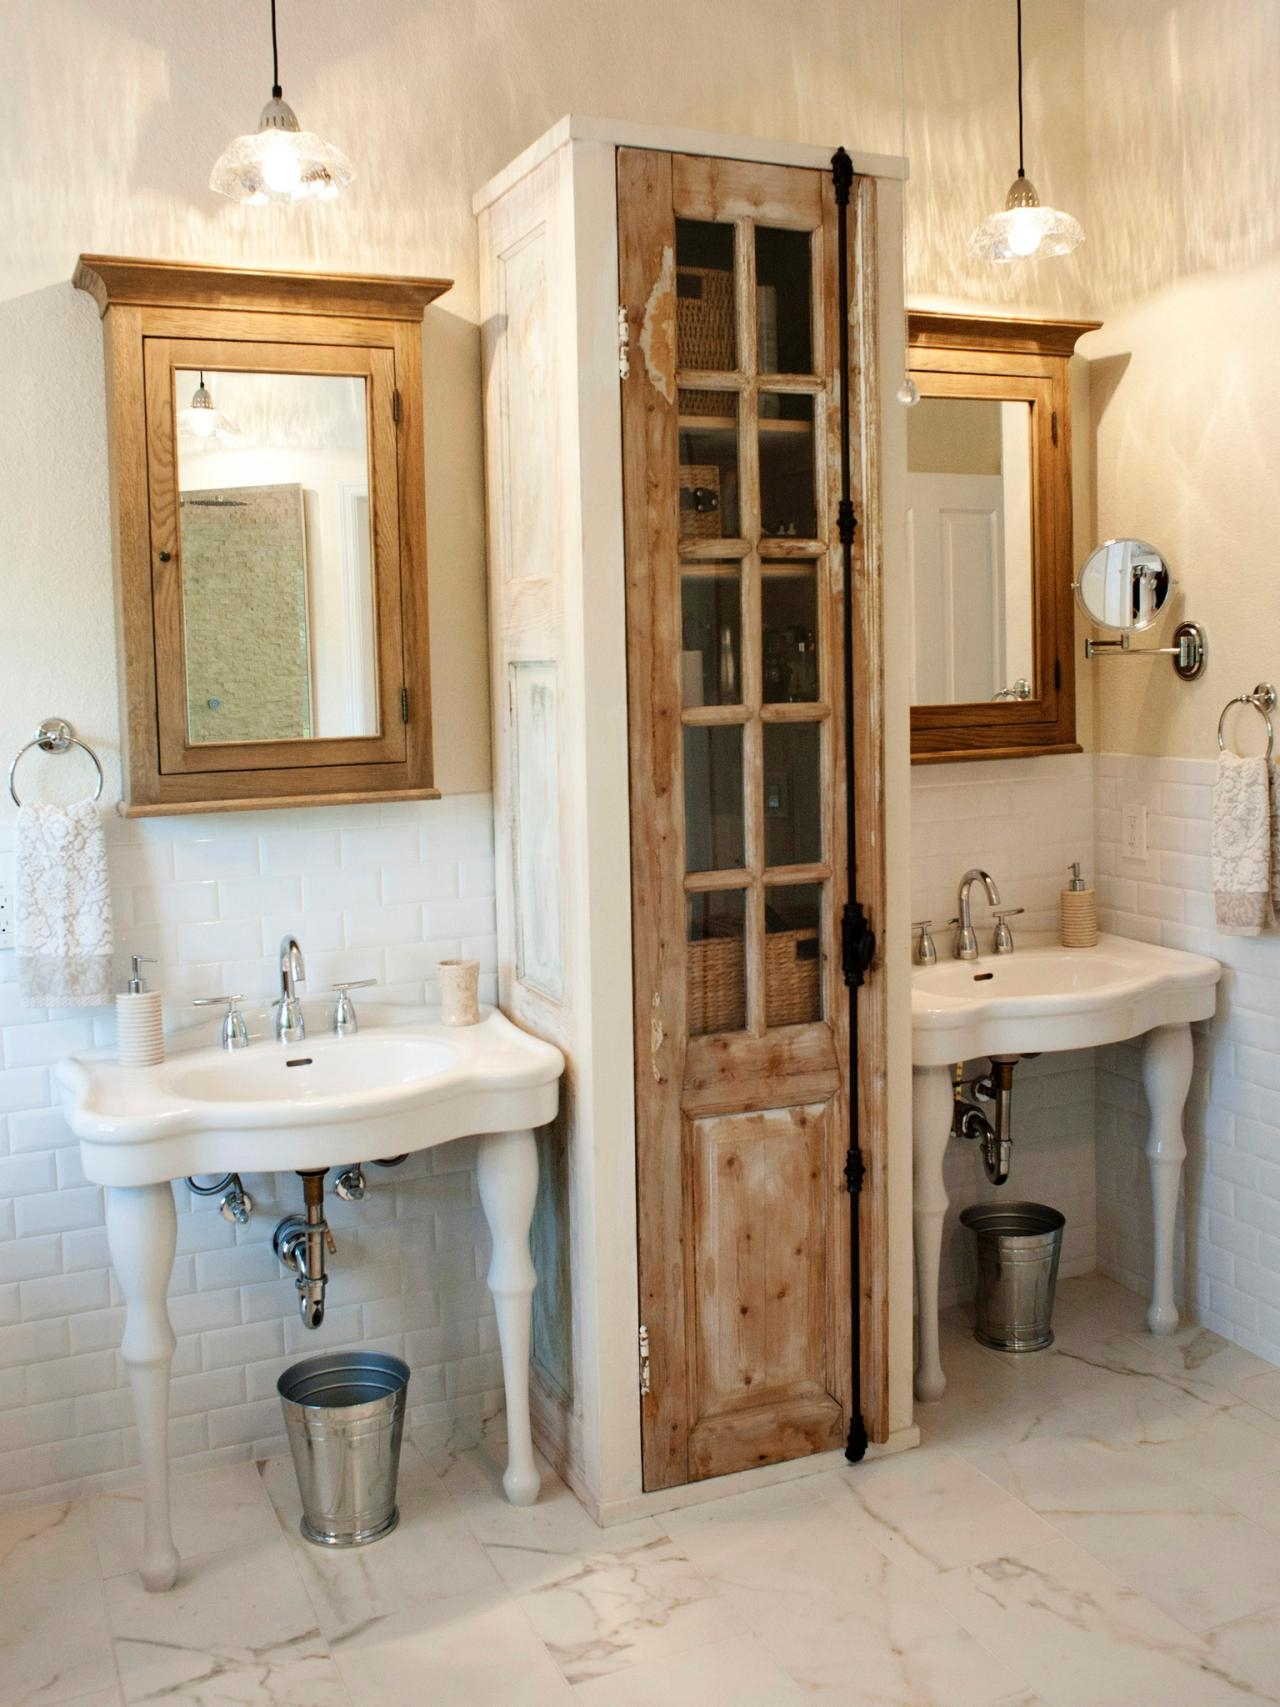 Ideas, pottery barn bathroom sink faucets pottery barn bathroom sink faucets bathroom sinks and cabinets trendy mirror without frame design 1280 x 1707 jpeg.